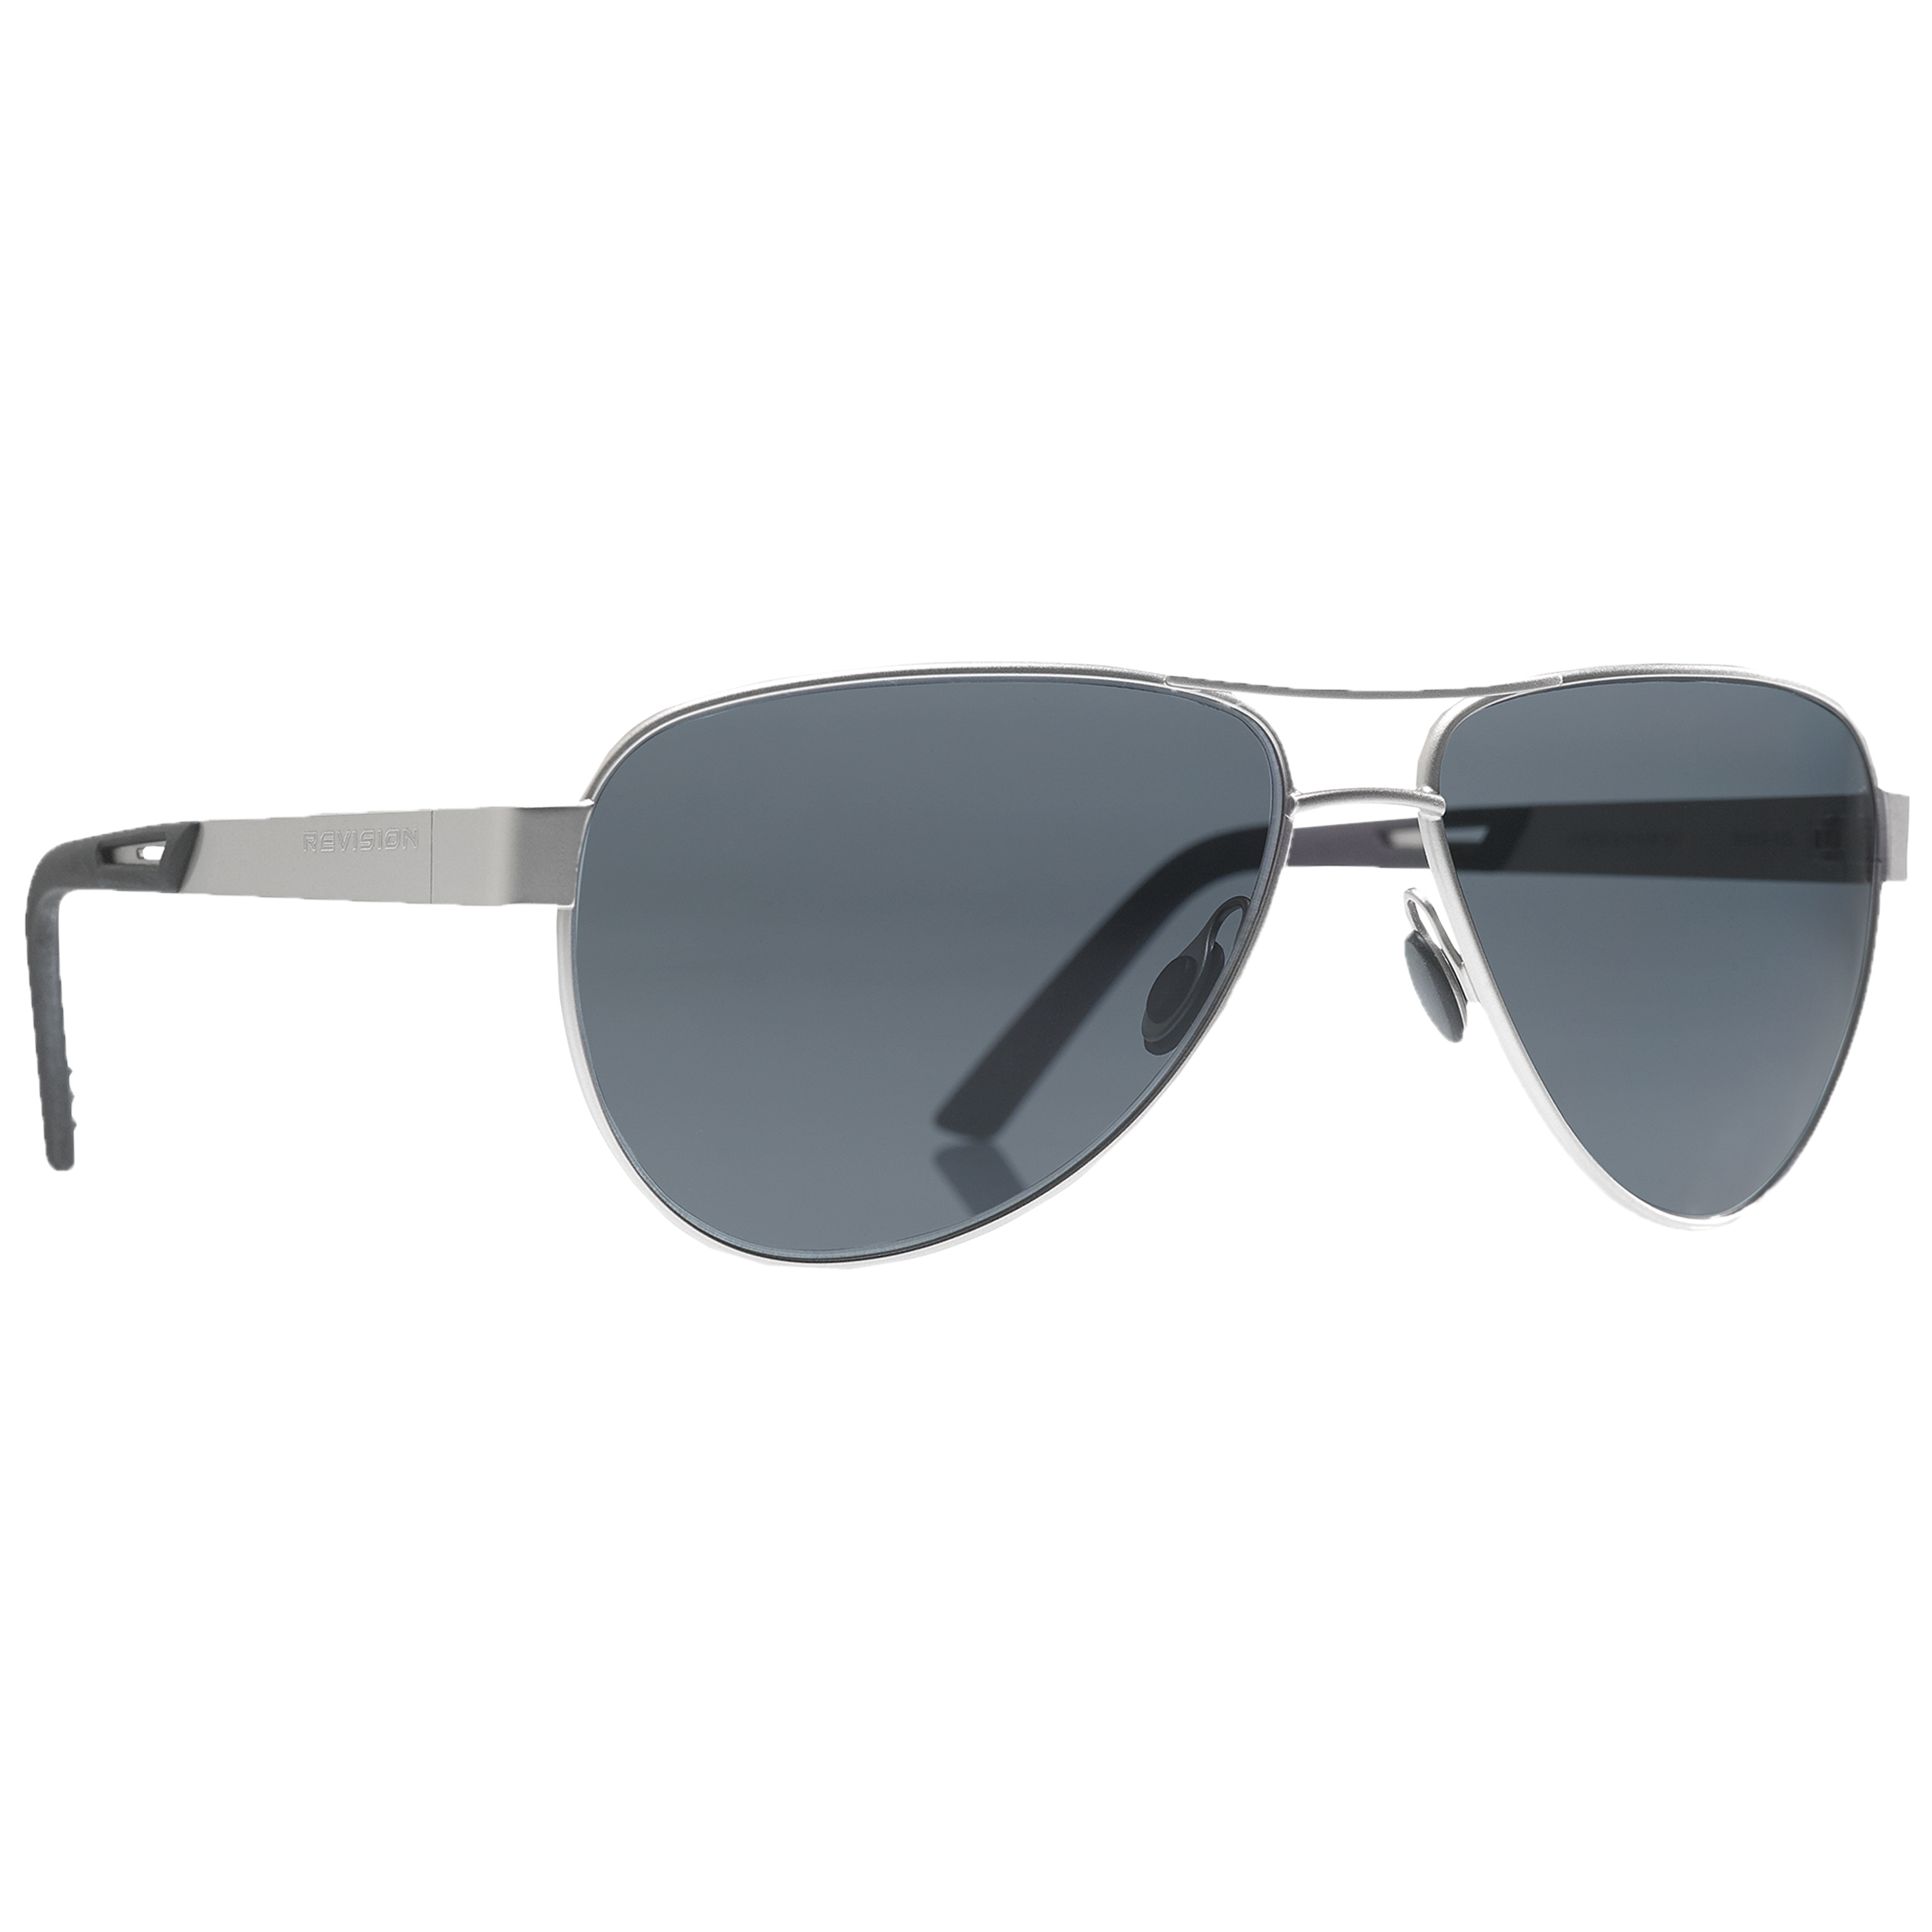 Revision Brille Alphawing Sport smoke